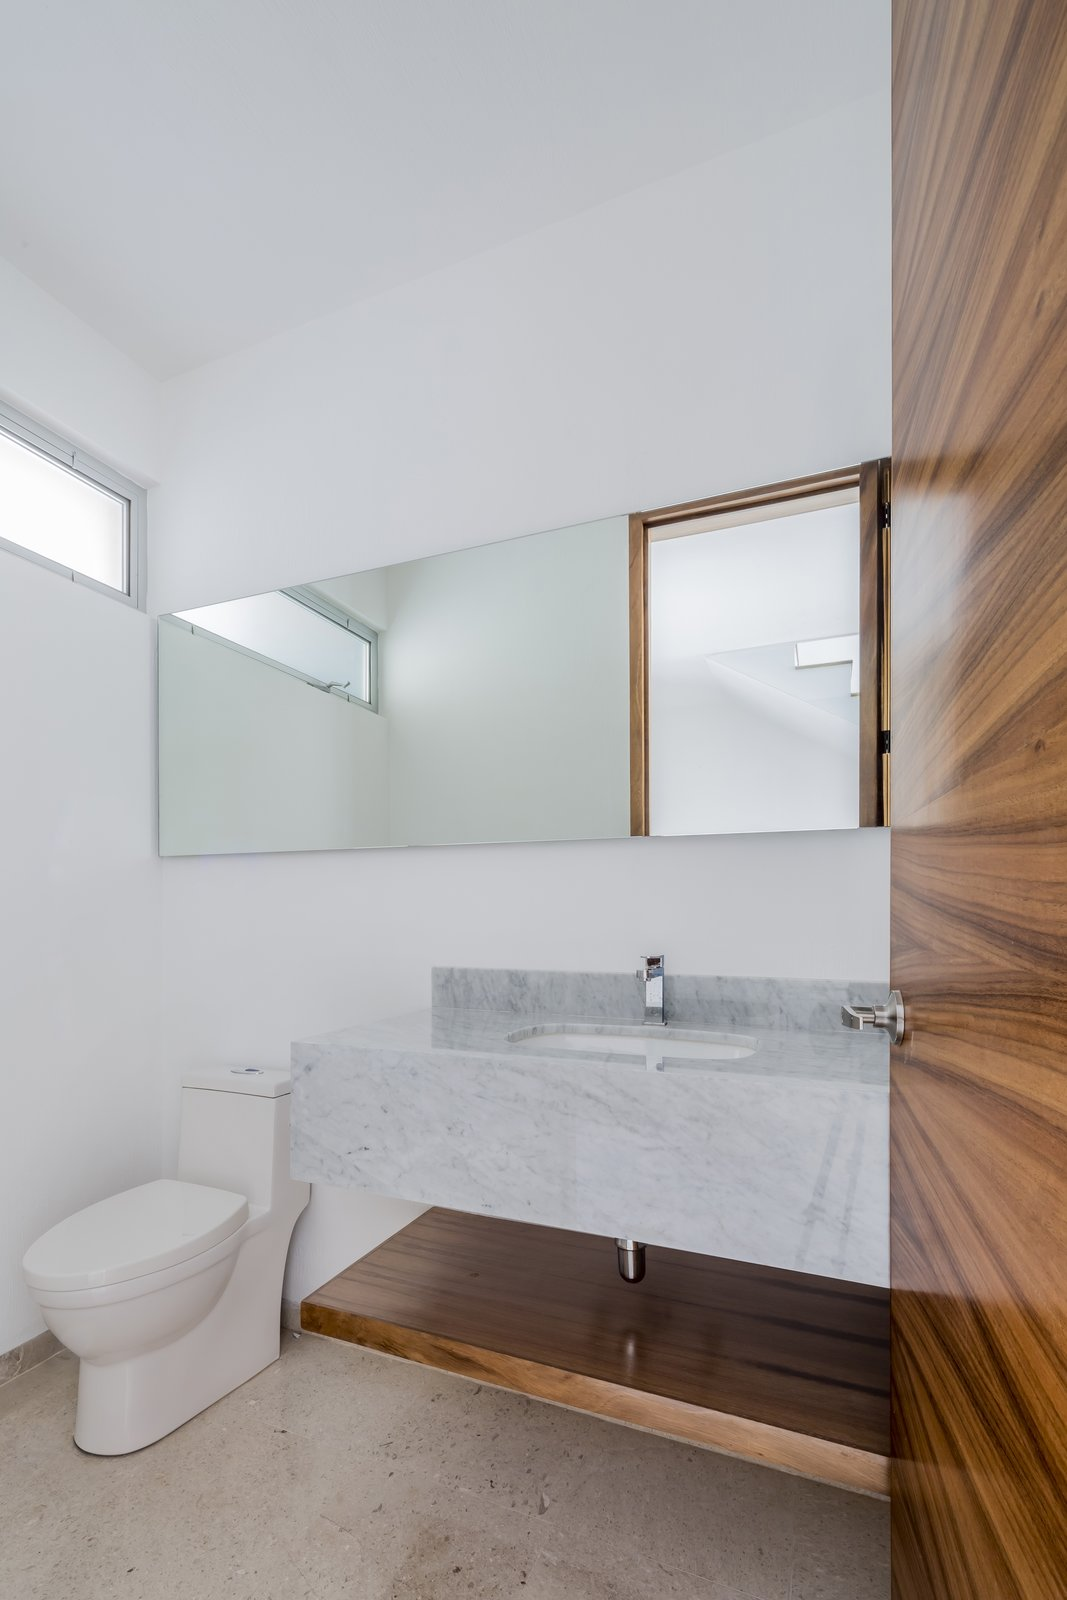 Bath Room, Marble Counter, Marble Floor, Ceiling Lighting, and One Piece Toilet  CASA VALLE by Sergio Villalobos